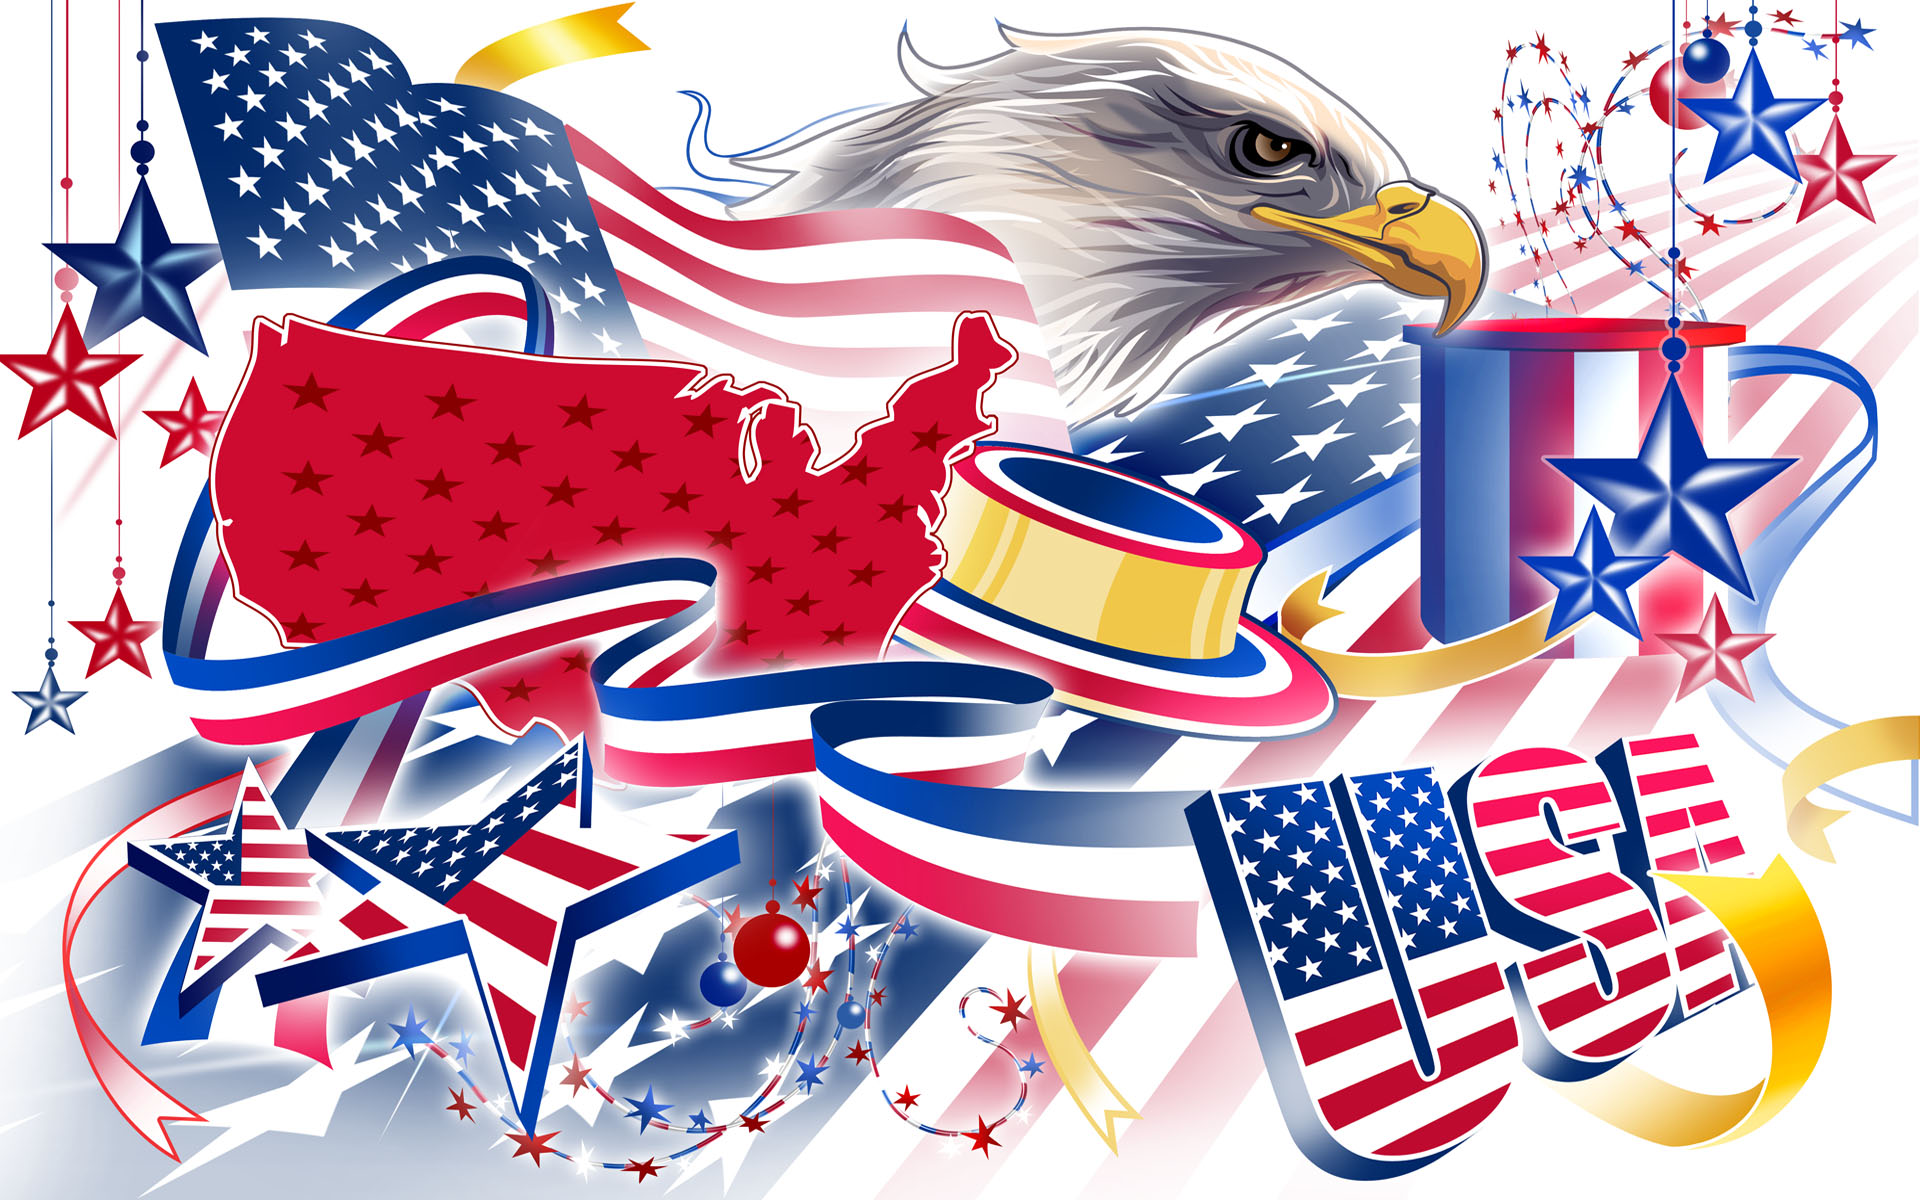 United States Of America images Independence Day HD wallpaper and 1920x1200